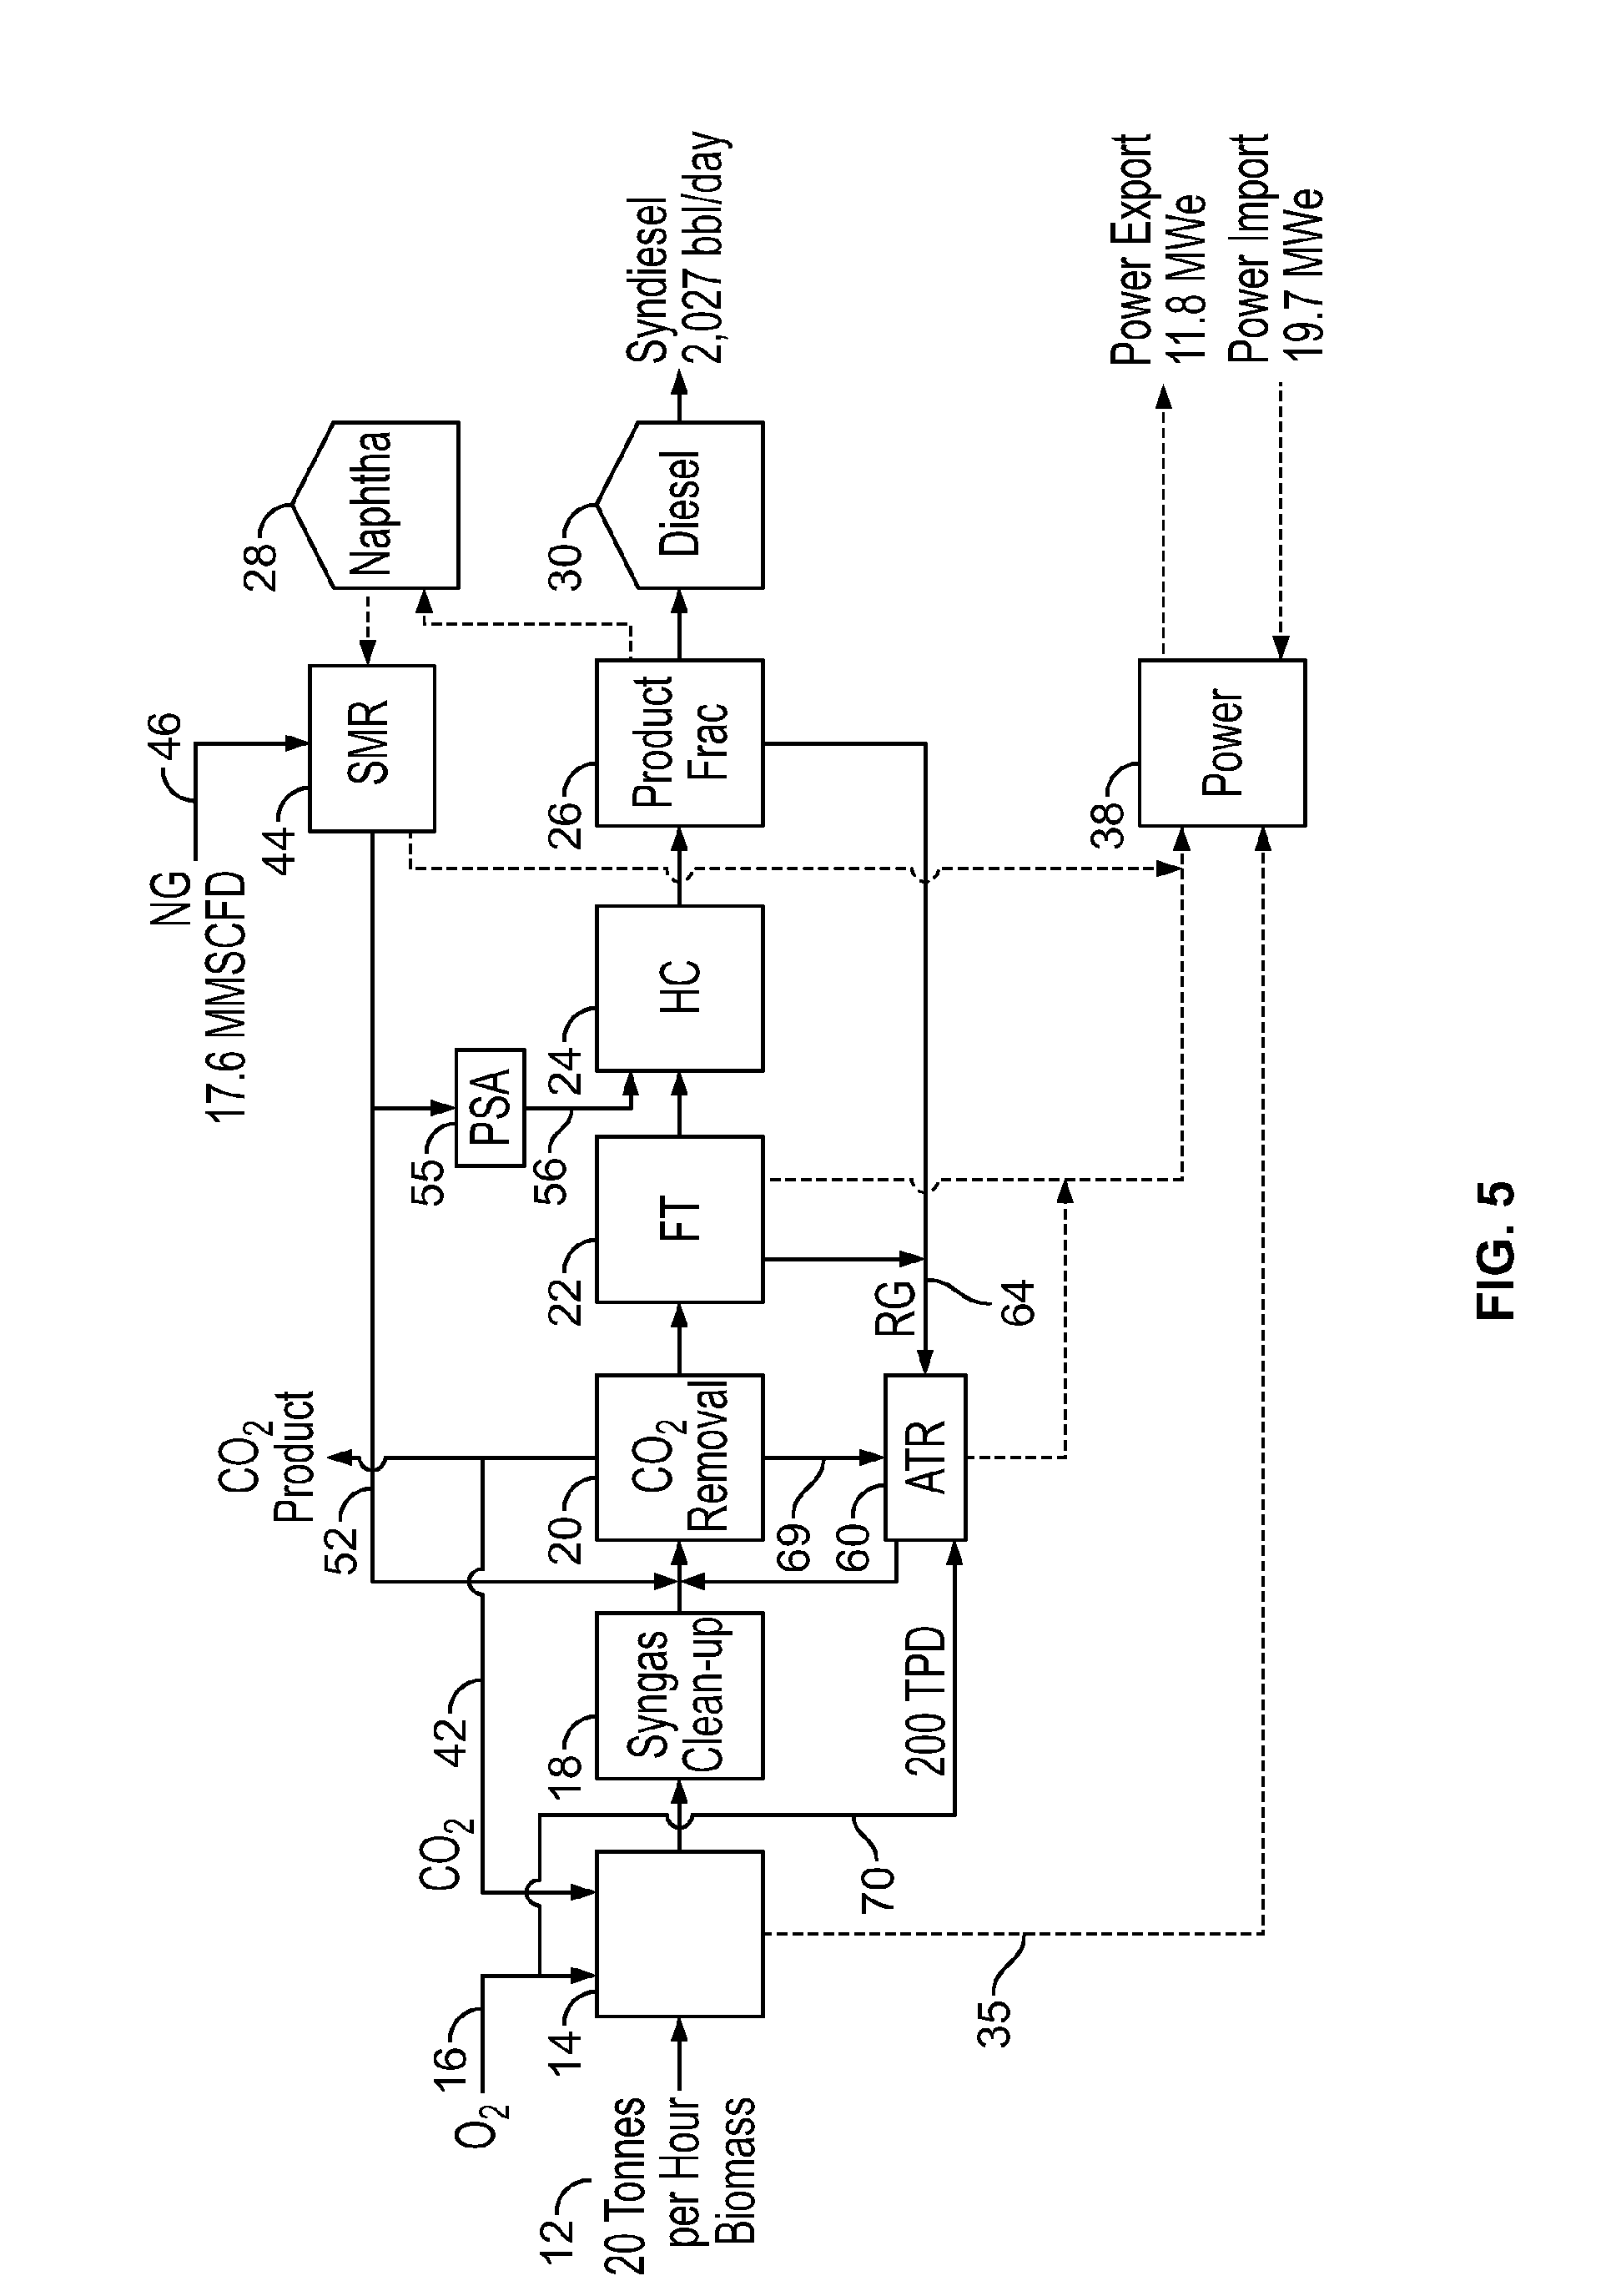 fischer tropsch process flow diagram how to draw a circle of induction motor patent ep2487225a1 enhancement